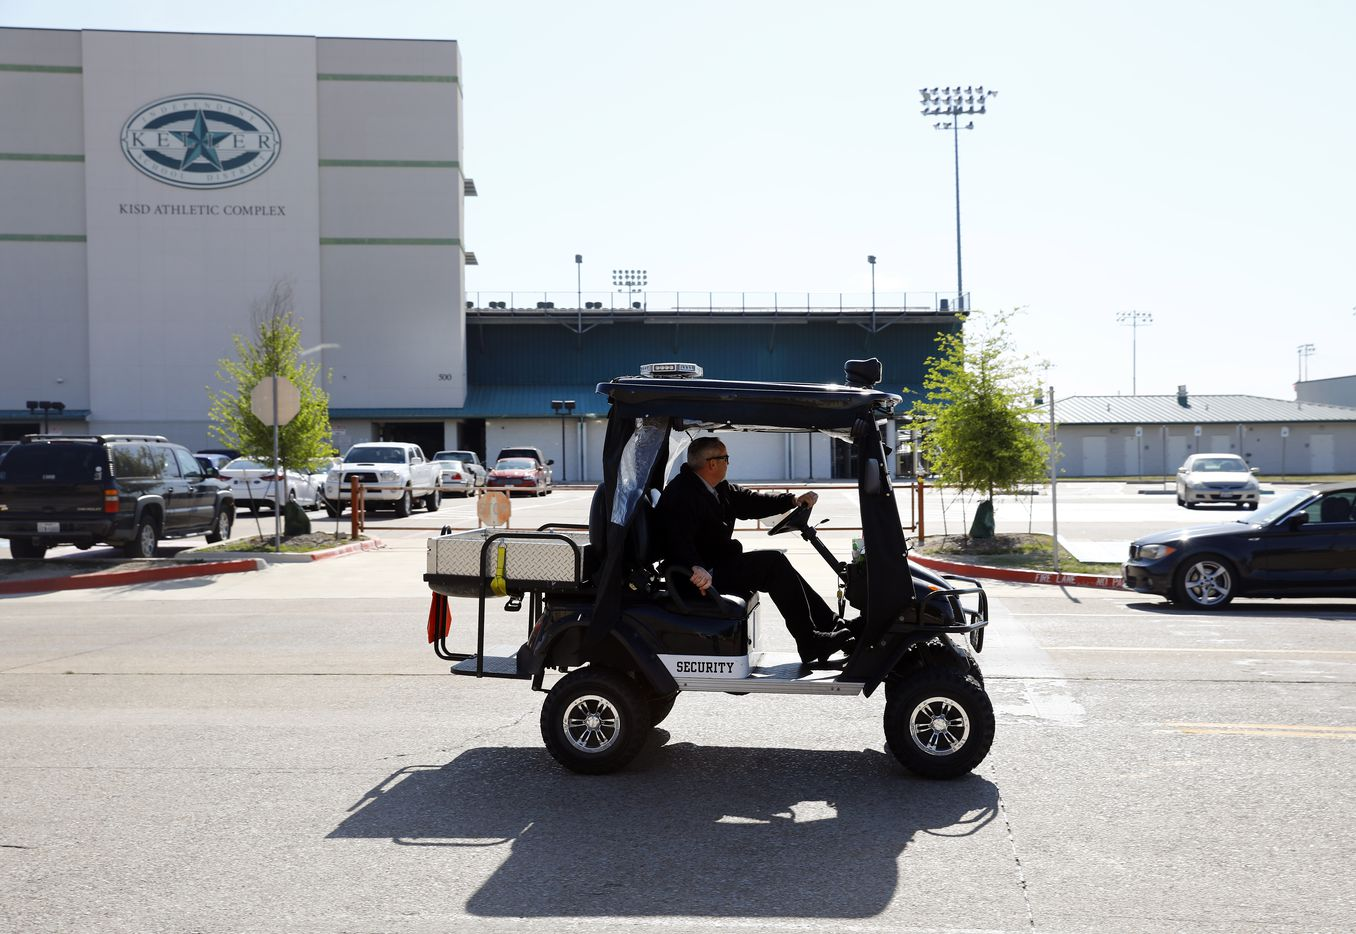 A Keller High School security patrolman passes by the Keller Athletic Complex after Keller ISD officials received information indicating an act of violence would take place at either a pep rally or a student-organized walkout.